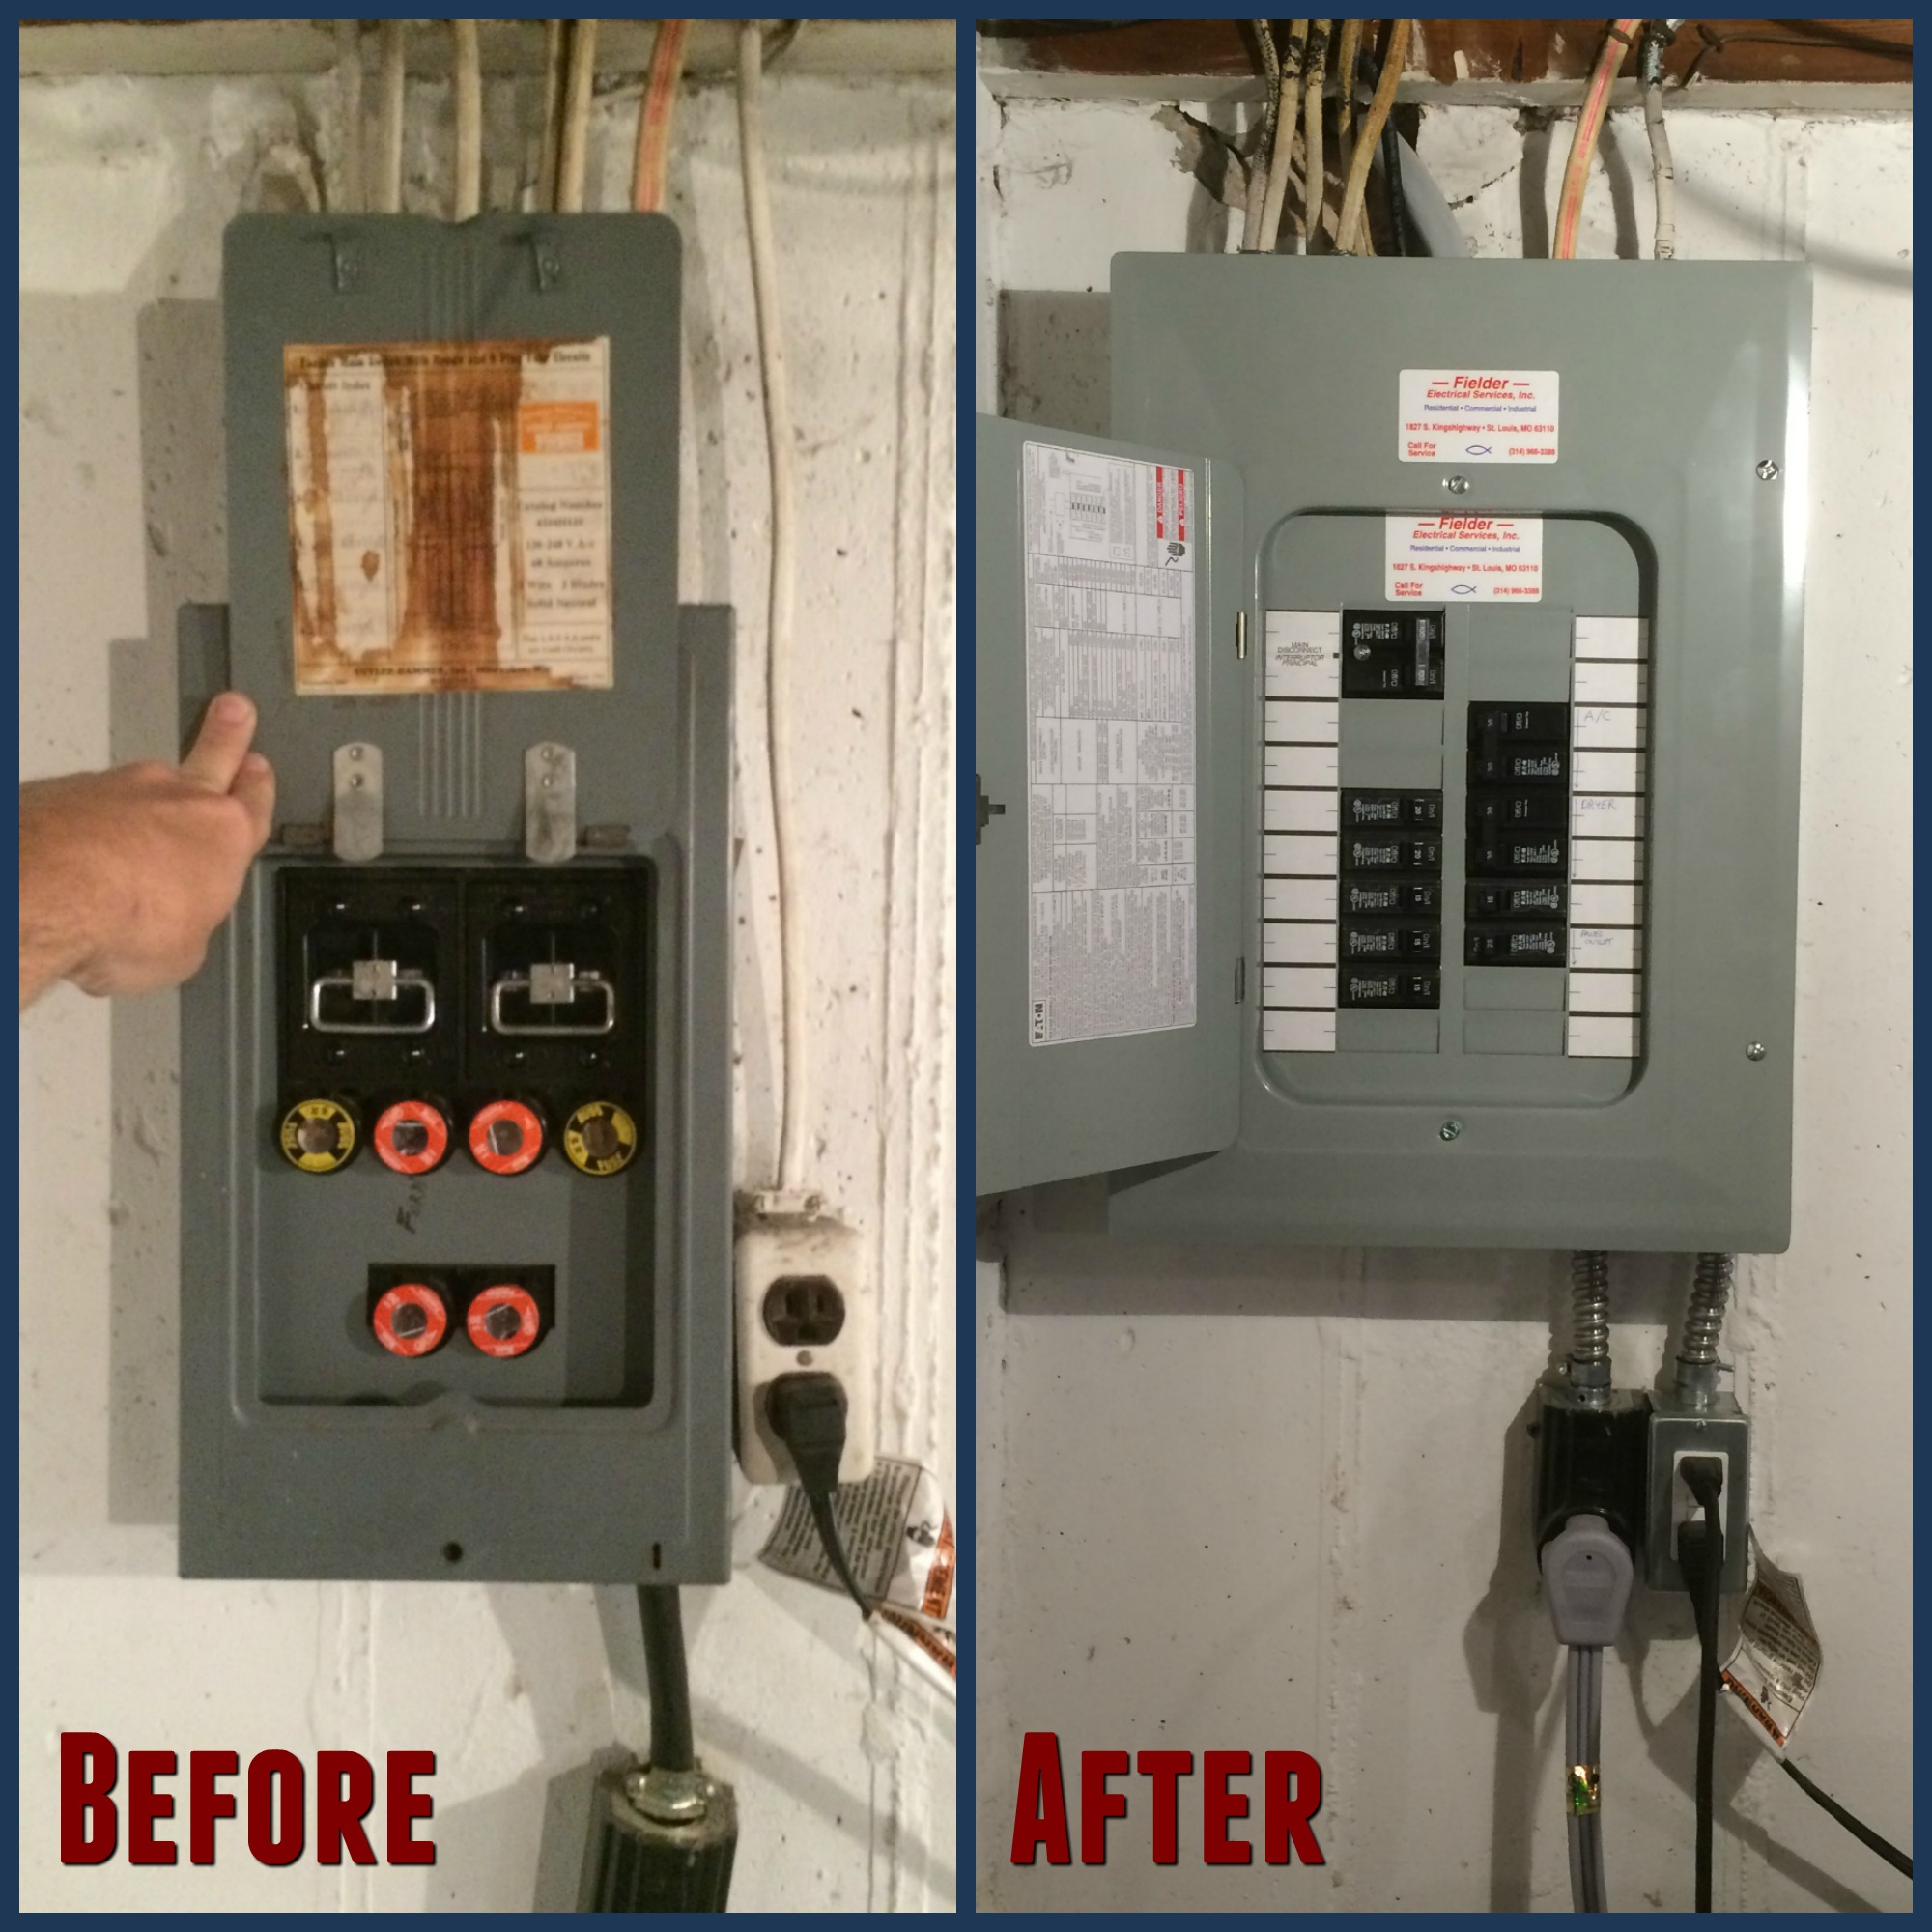 fuse panel to breaker panel facbooik com Cost To Replace Fuse Box With Breaker Panel cost to upgrade fuse panel to breaker panel redflagdeals cost to replace fuse box with breaker panel